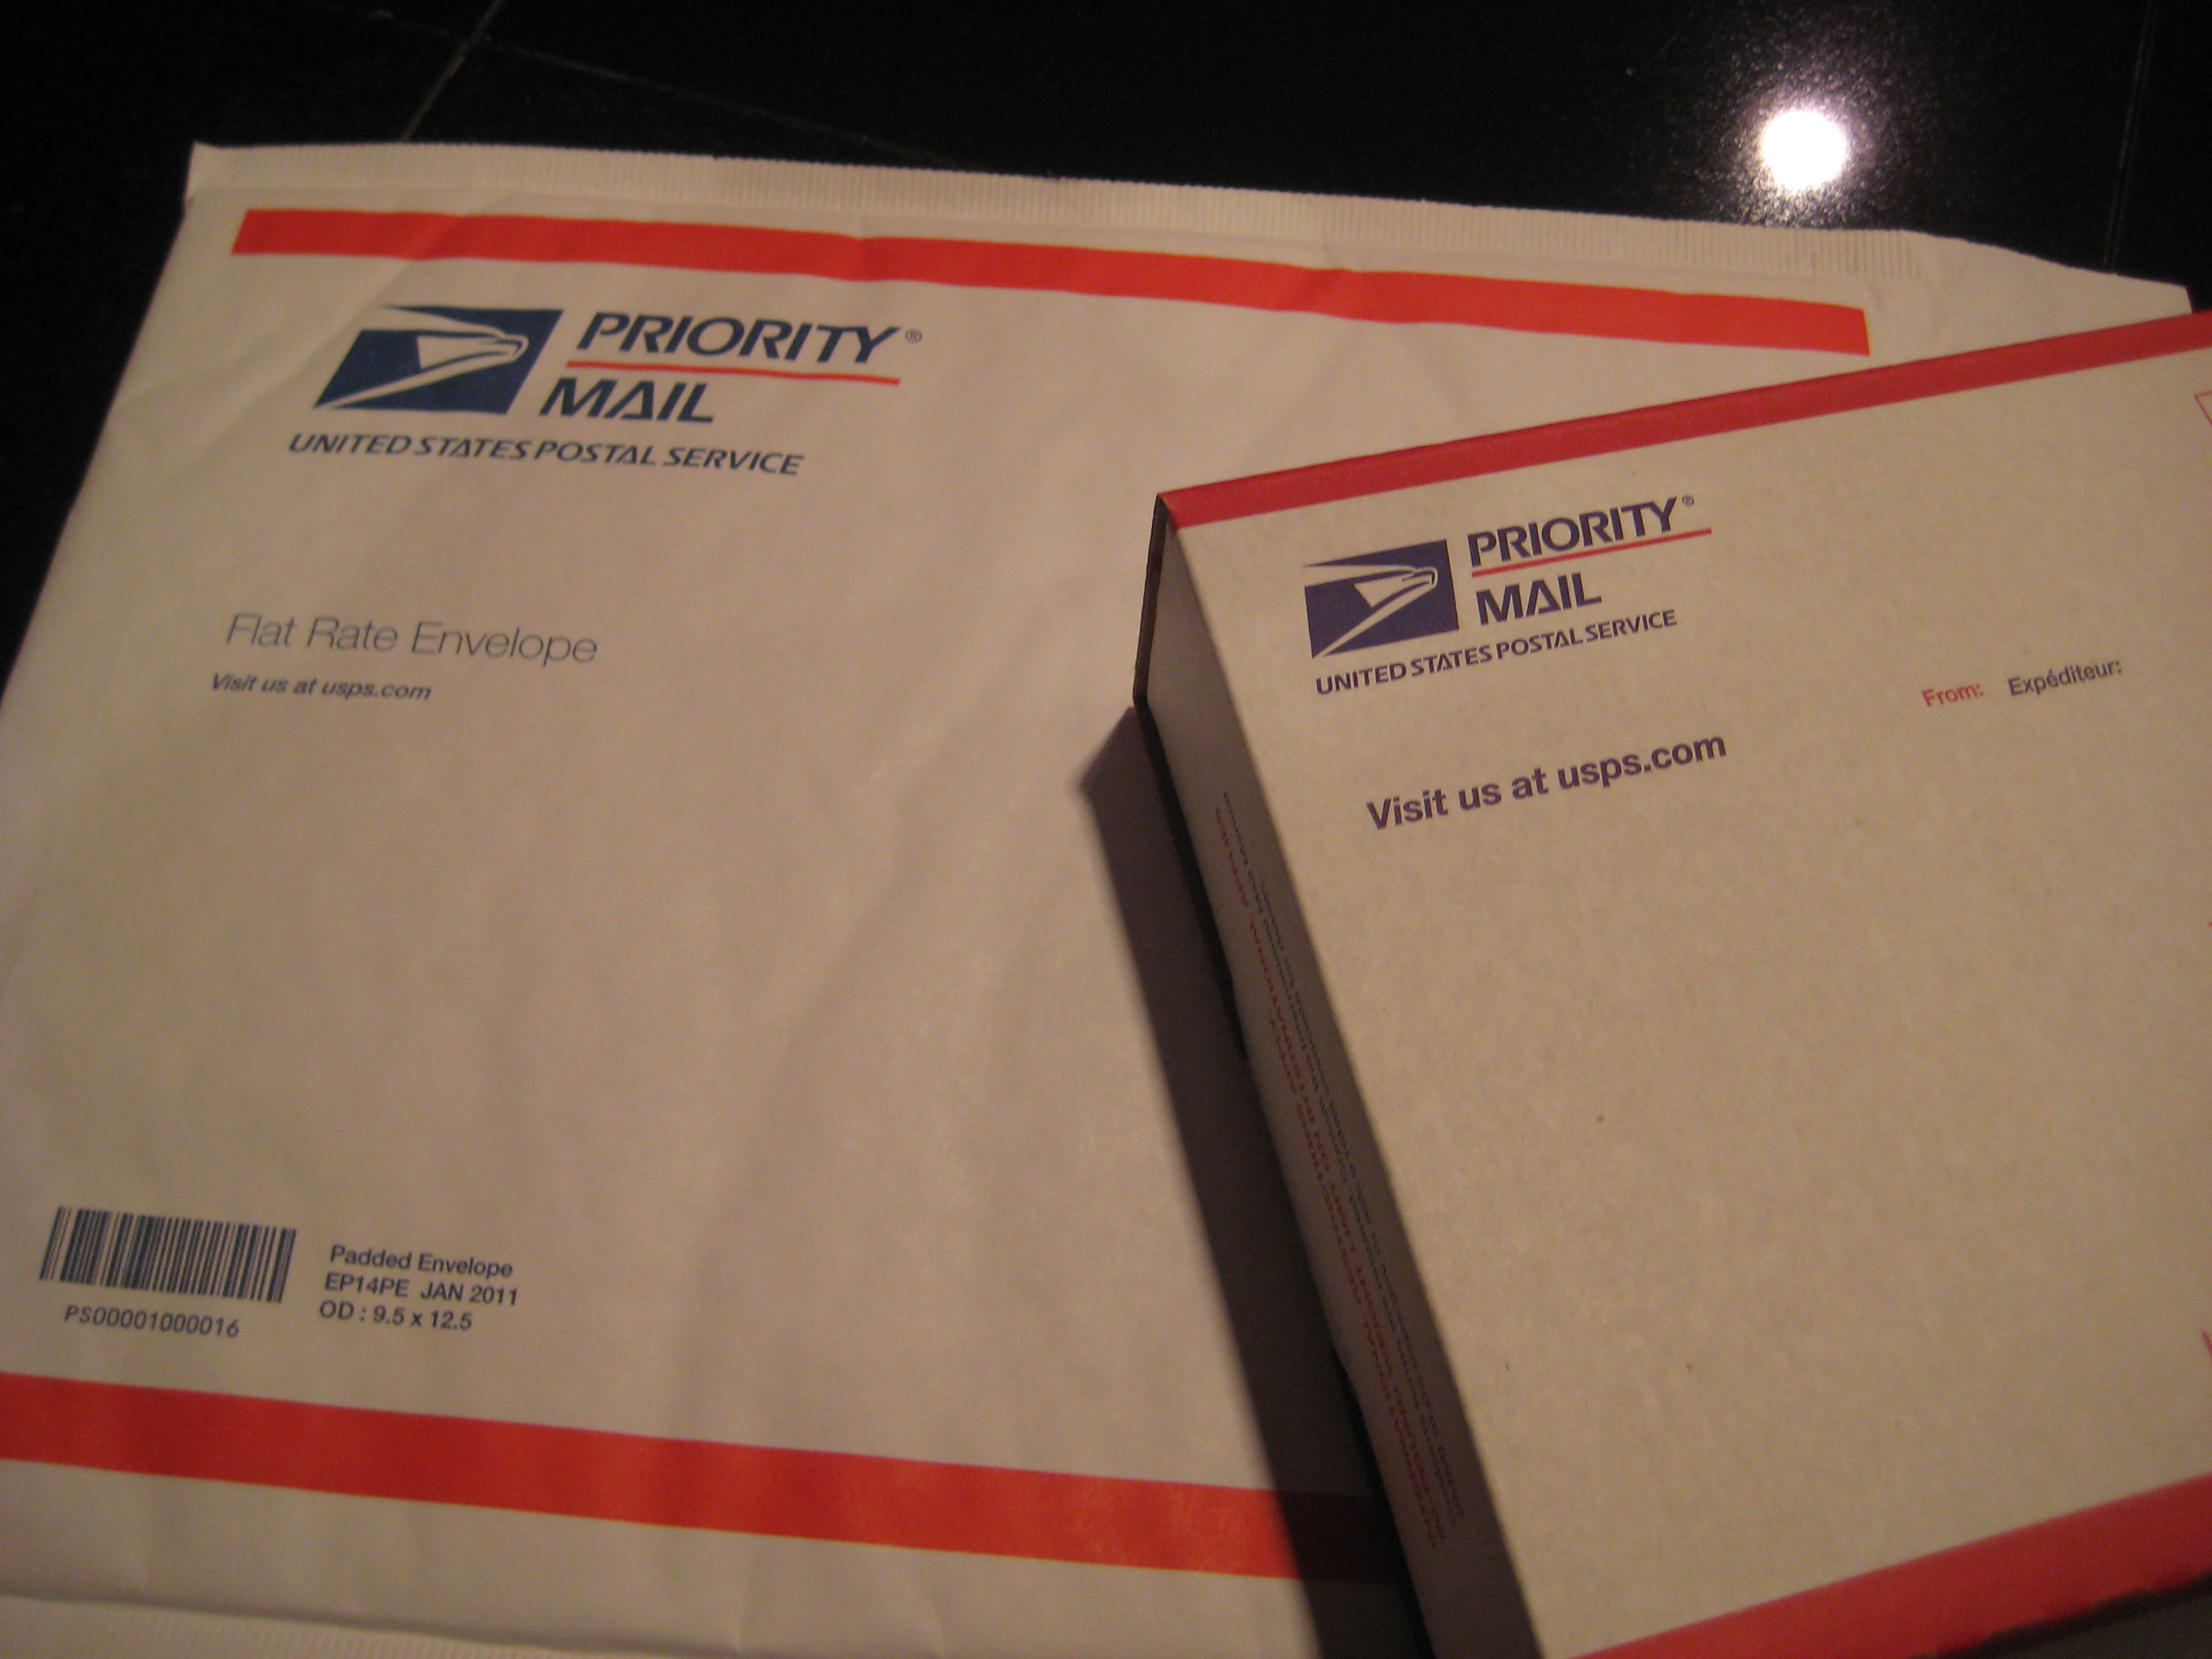 Shipping with Priority Mail Flat Rate boxes or envelopes using uninewz.ga can save you money. uninewz.ga customers save up to 10% off the Post Office rate each time they print a shipping label for a Priority Mail Flat Rate envelope or box. Plus uninewz.ga offers insurance coverage up to $10,